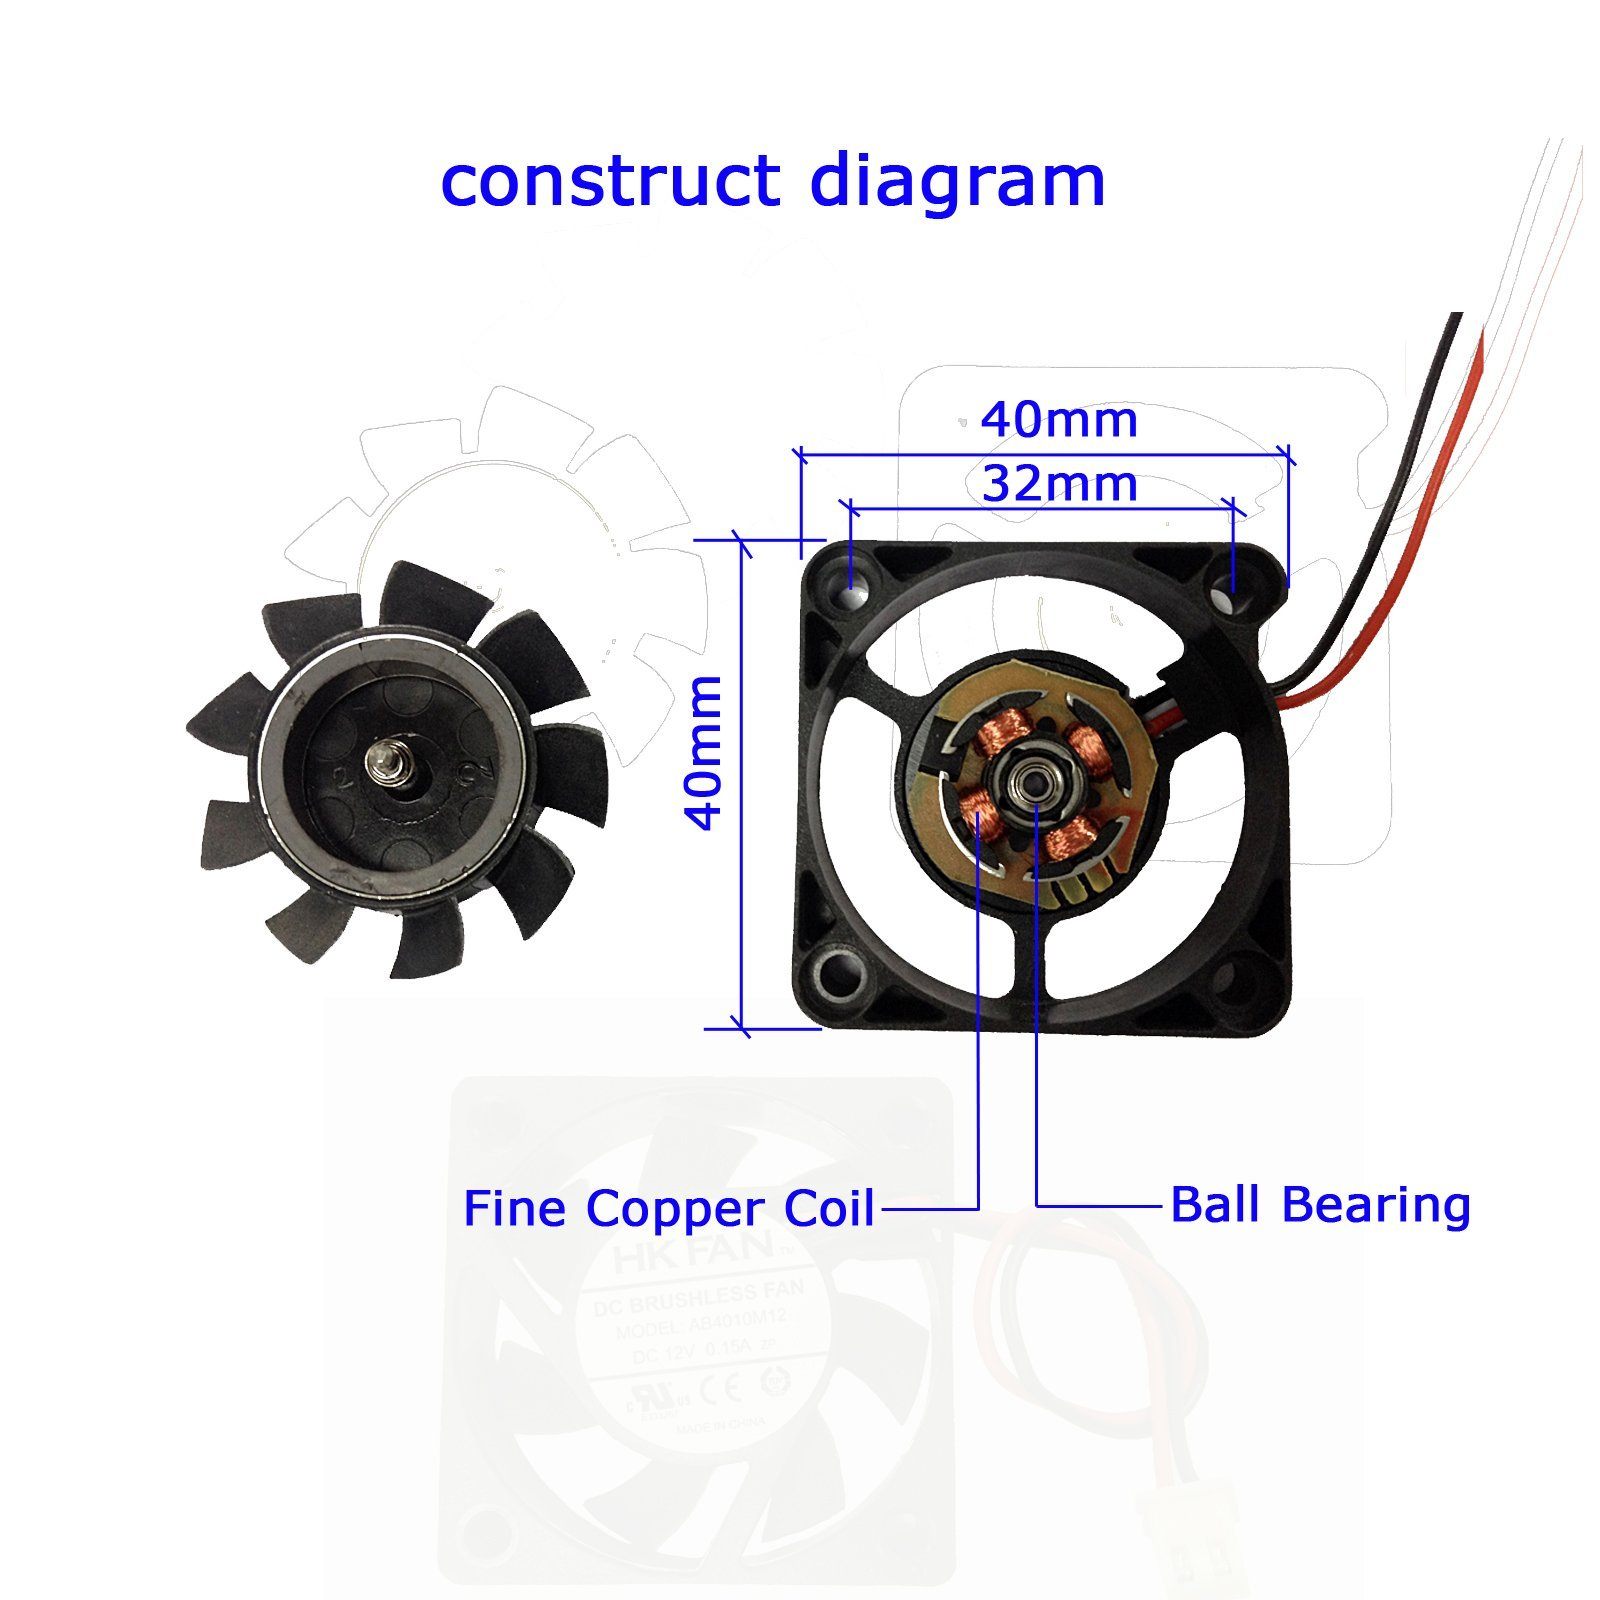 2-packs 40 x 40 x 10mm 4010 12V 0.10A Brushless DC Cooling Fan 2pin AV-F4010MB UL CE by AMBEYOND FAN (Image #3)